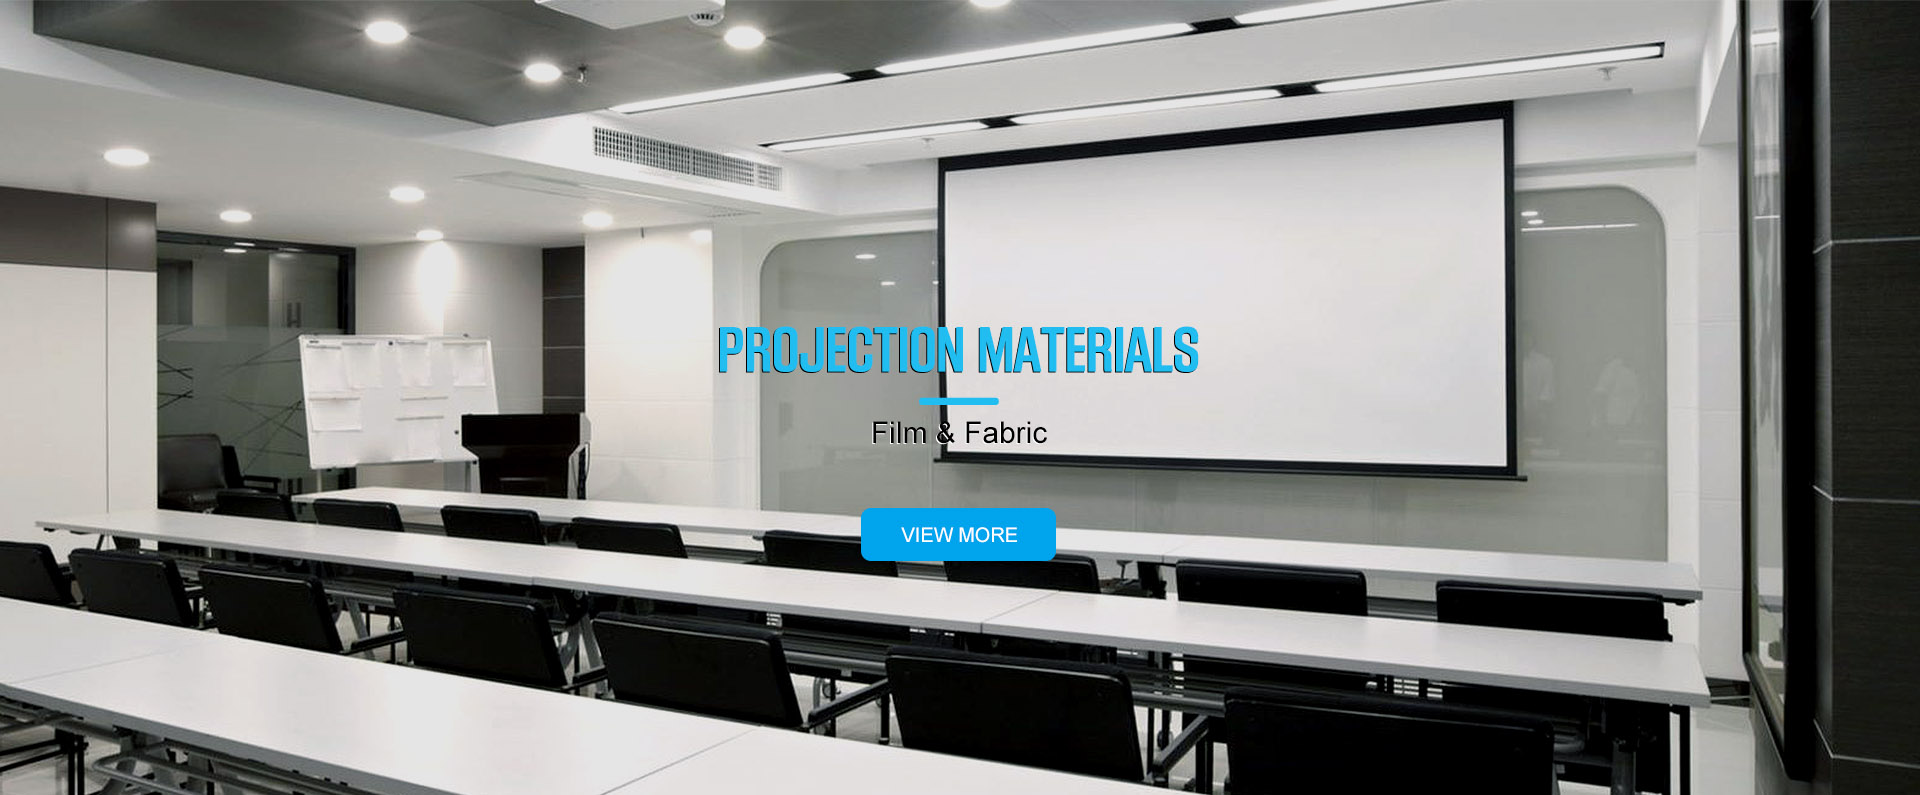 Projection Materials